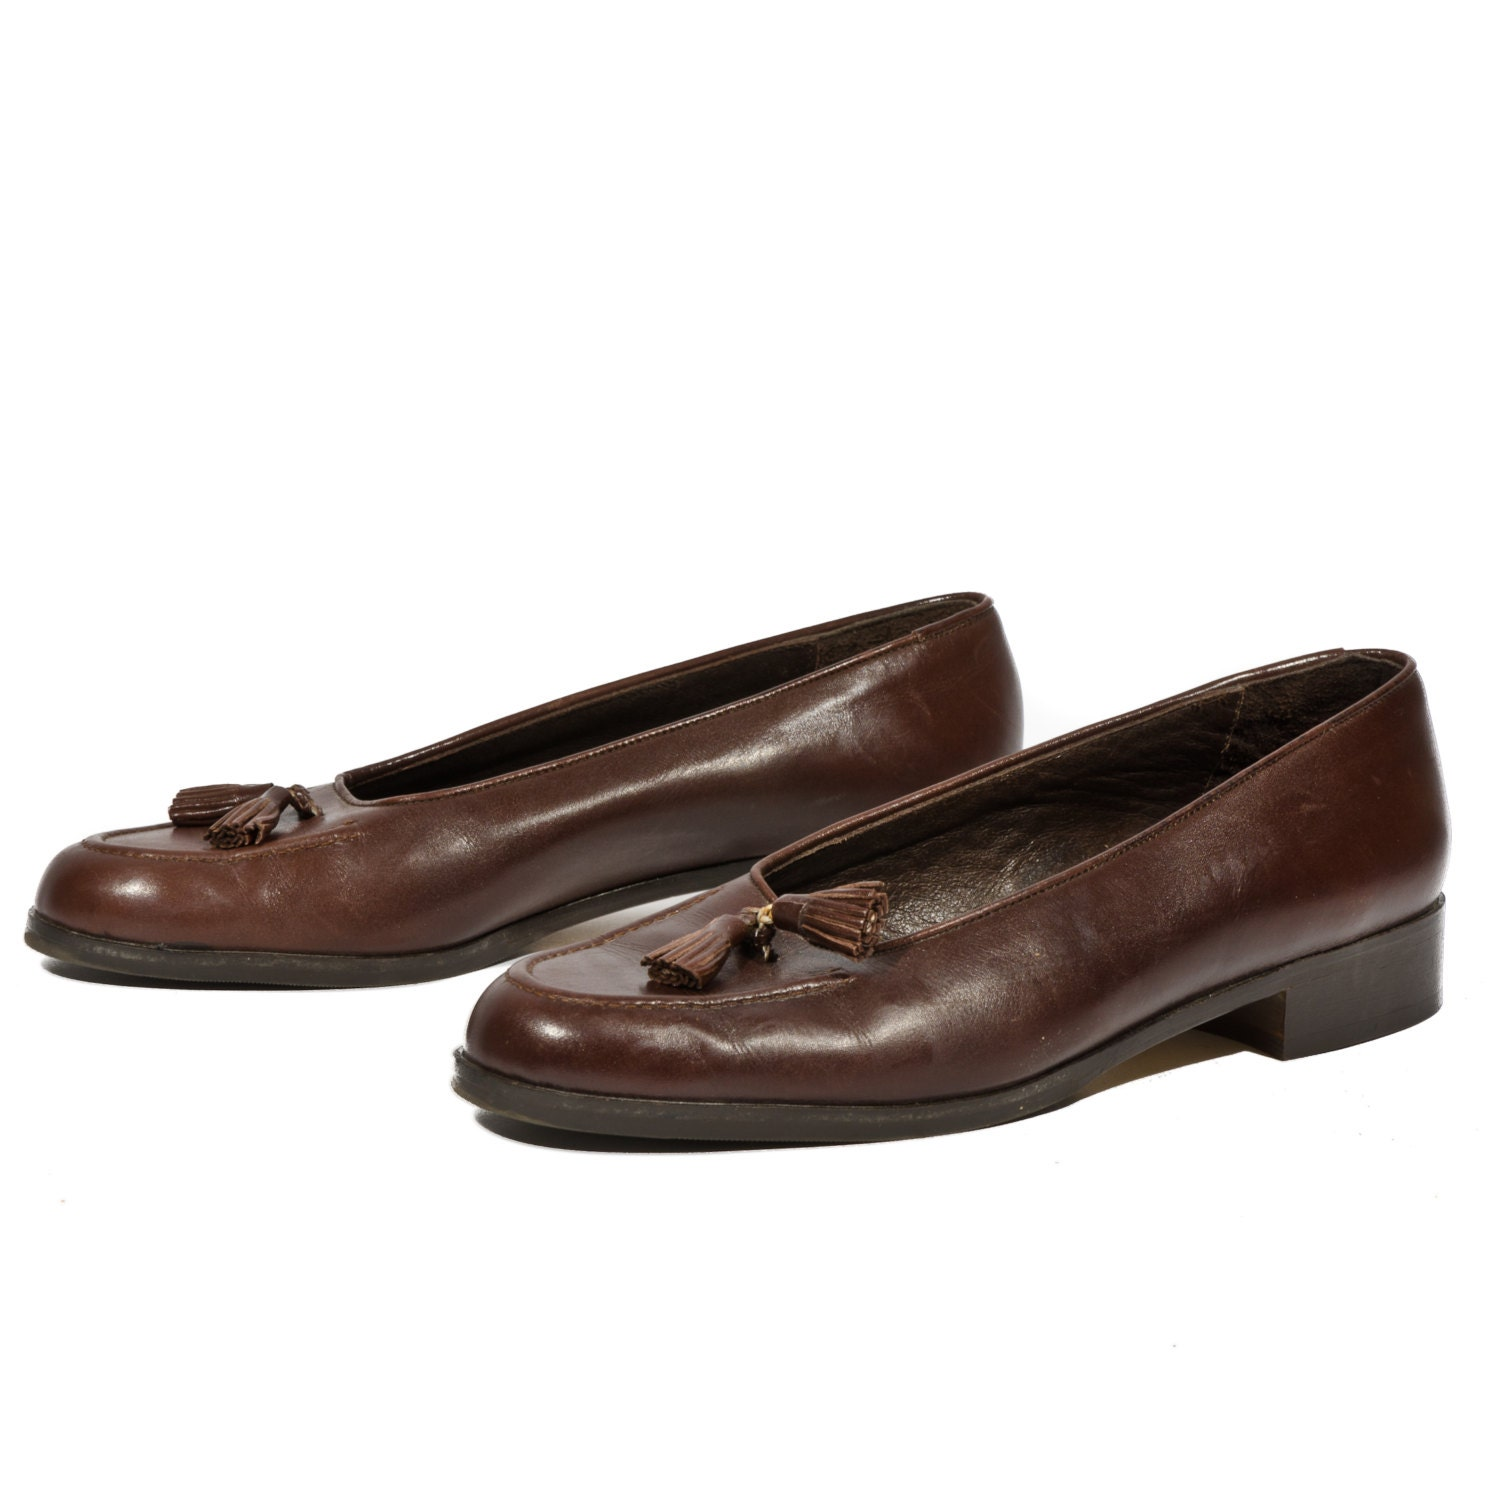 Womens Brown Flats Shoes